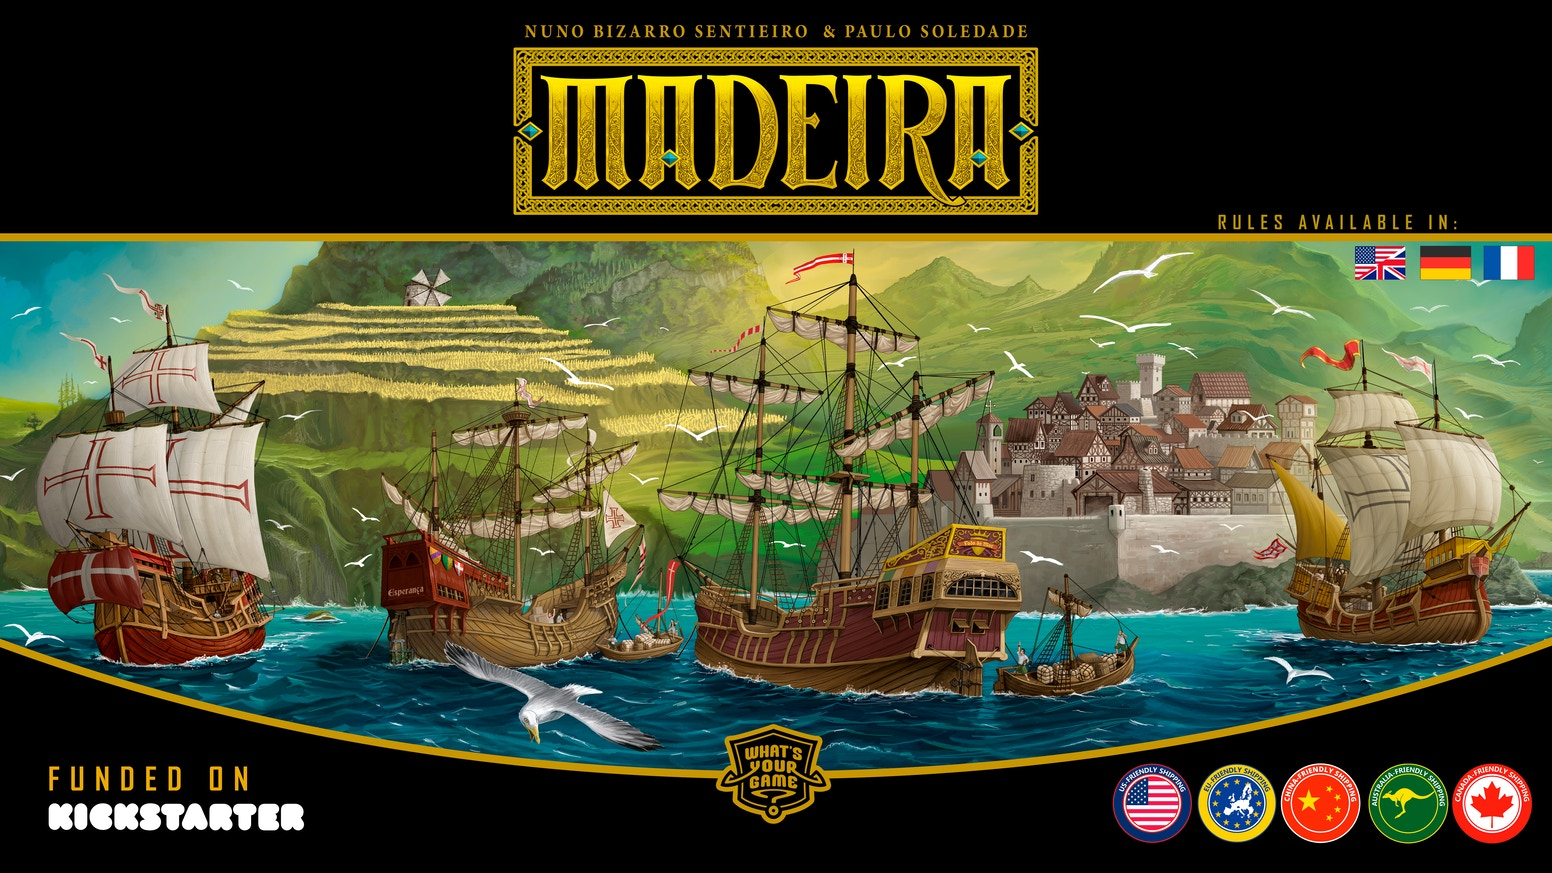 Madeira, the classic strategy game returns in an exclusive Collector's Edition Big Box +Expansion.